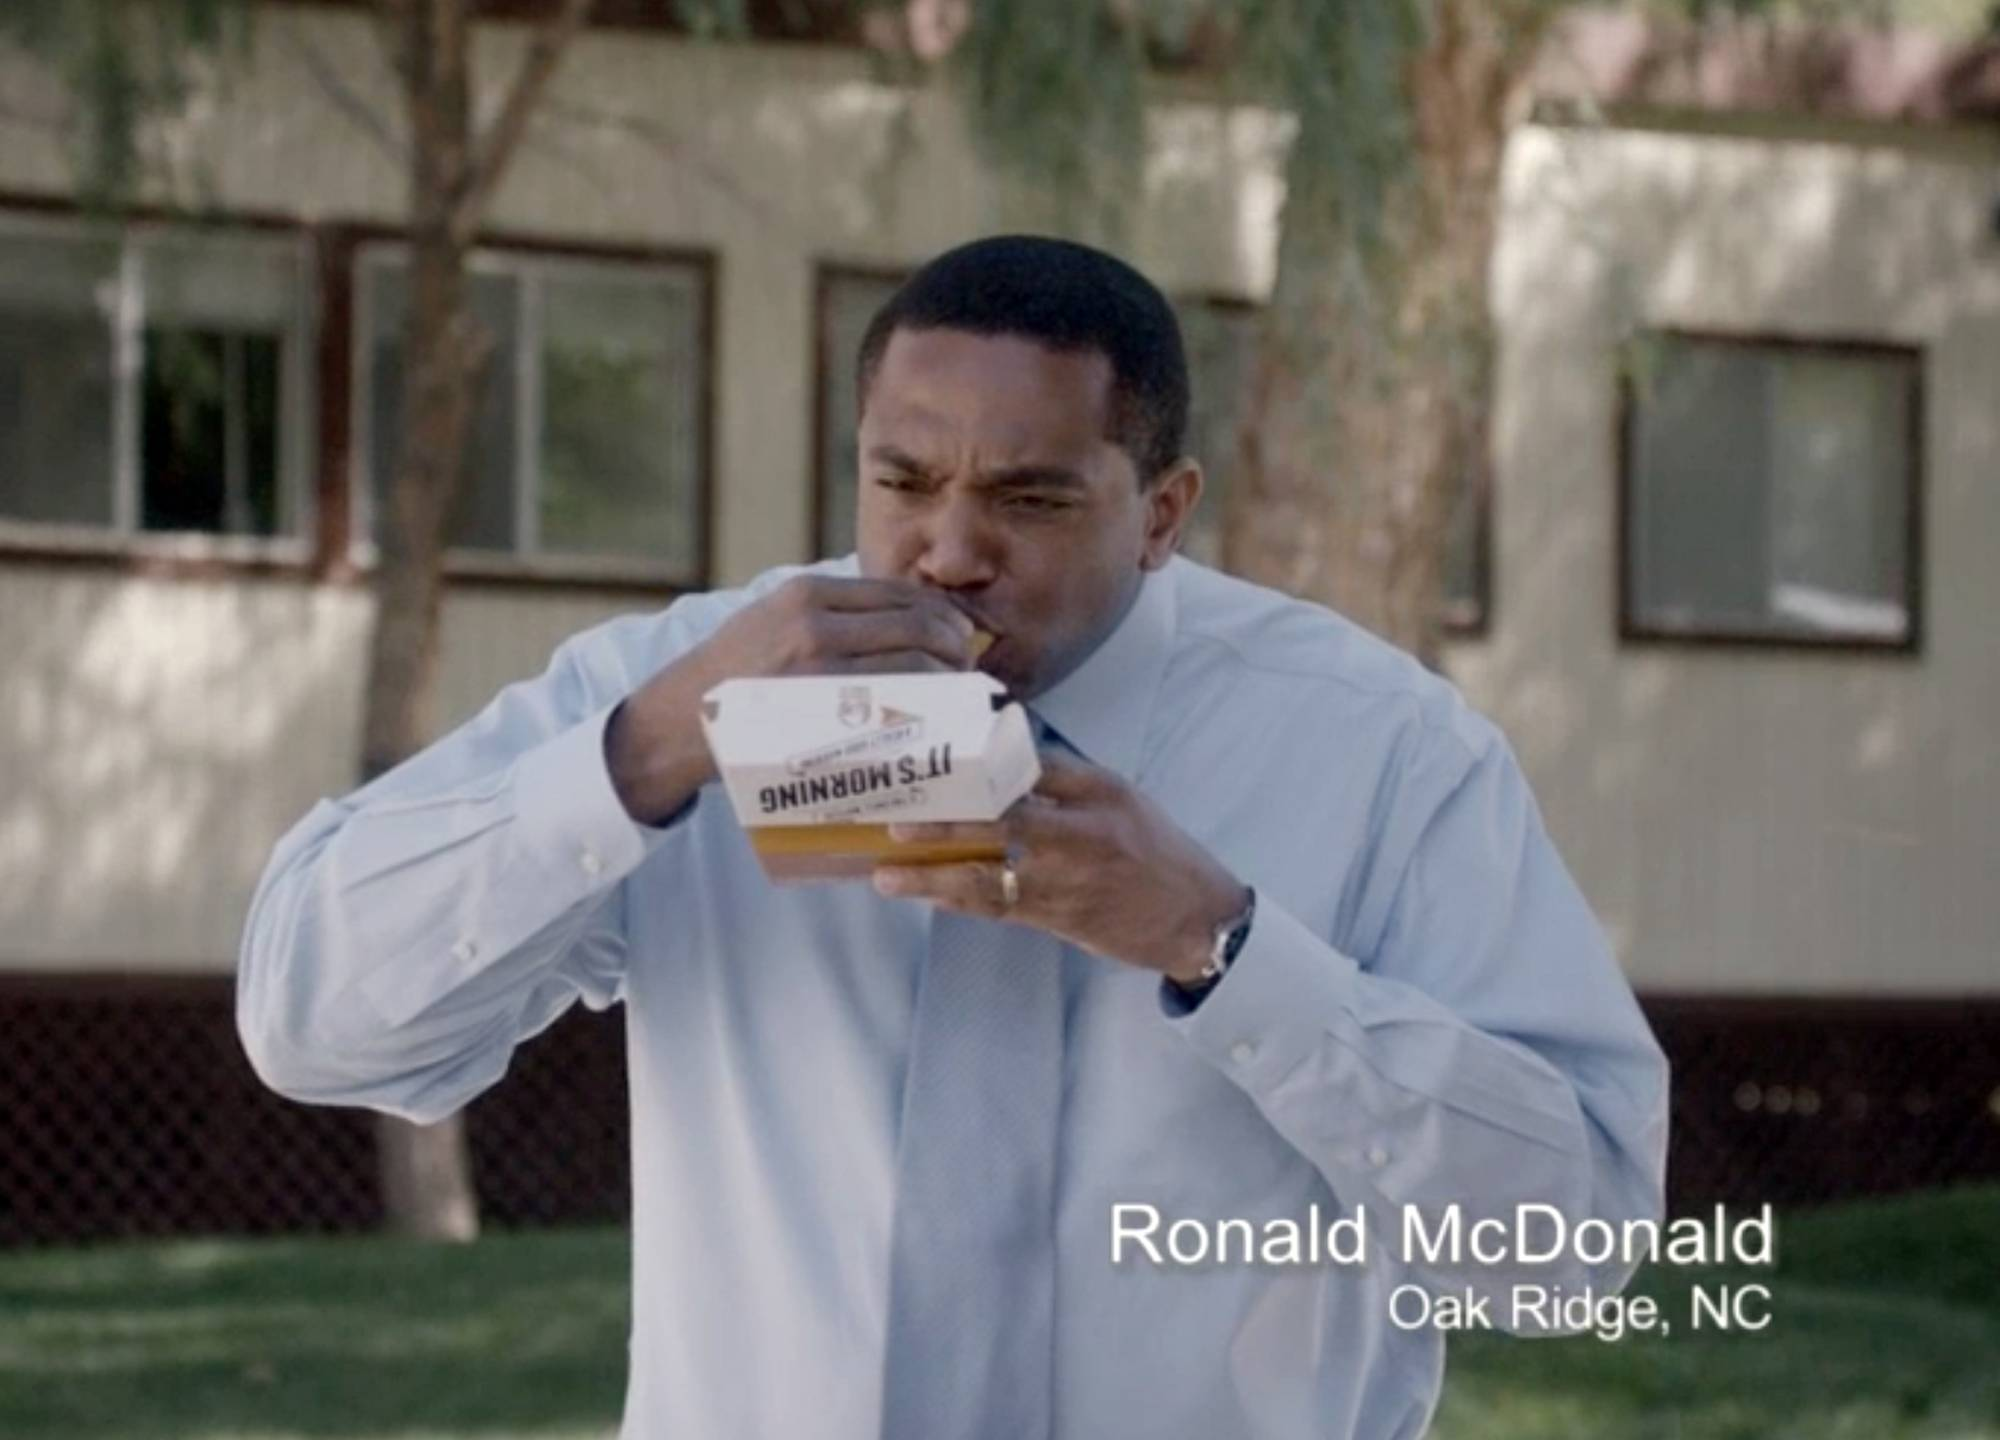 This frame grab from video provided by Taco Bell via Taylor Strategy shows Ronald McDonald of Oak Ridge, N.C., in a Taco Bell commercial. The fast-food chain is promoting its new breakfast menu, which features novelties like a waffle taco.